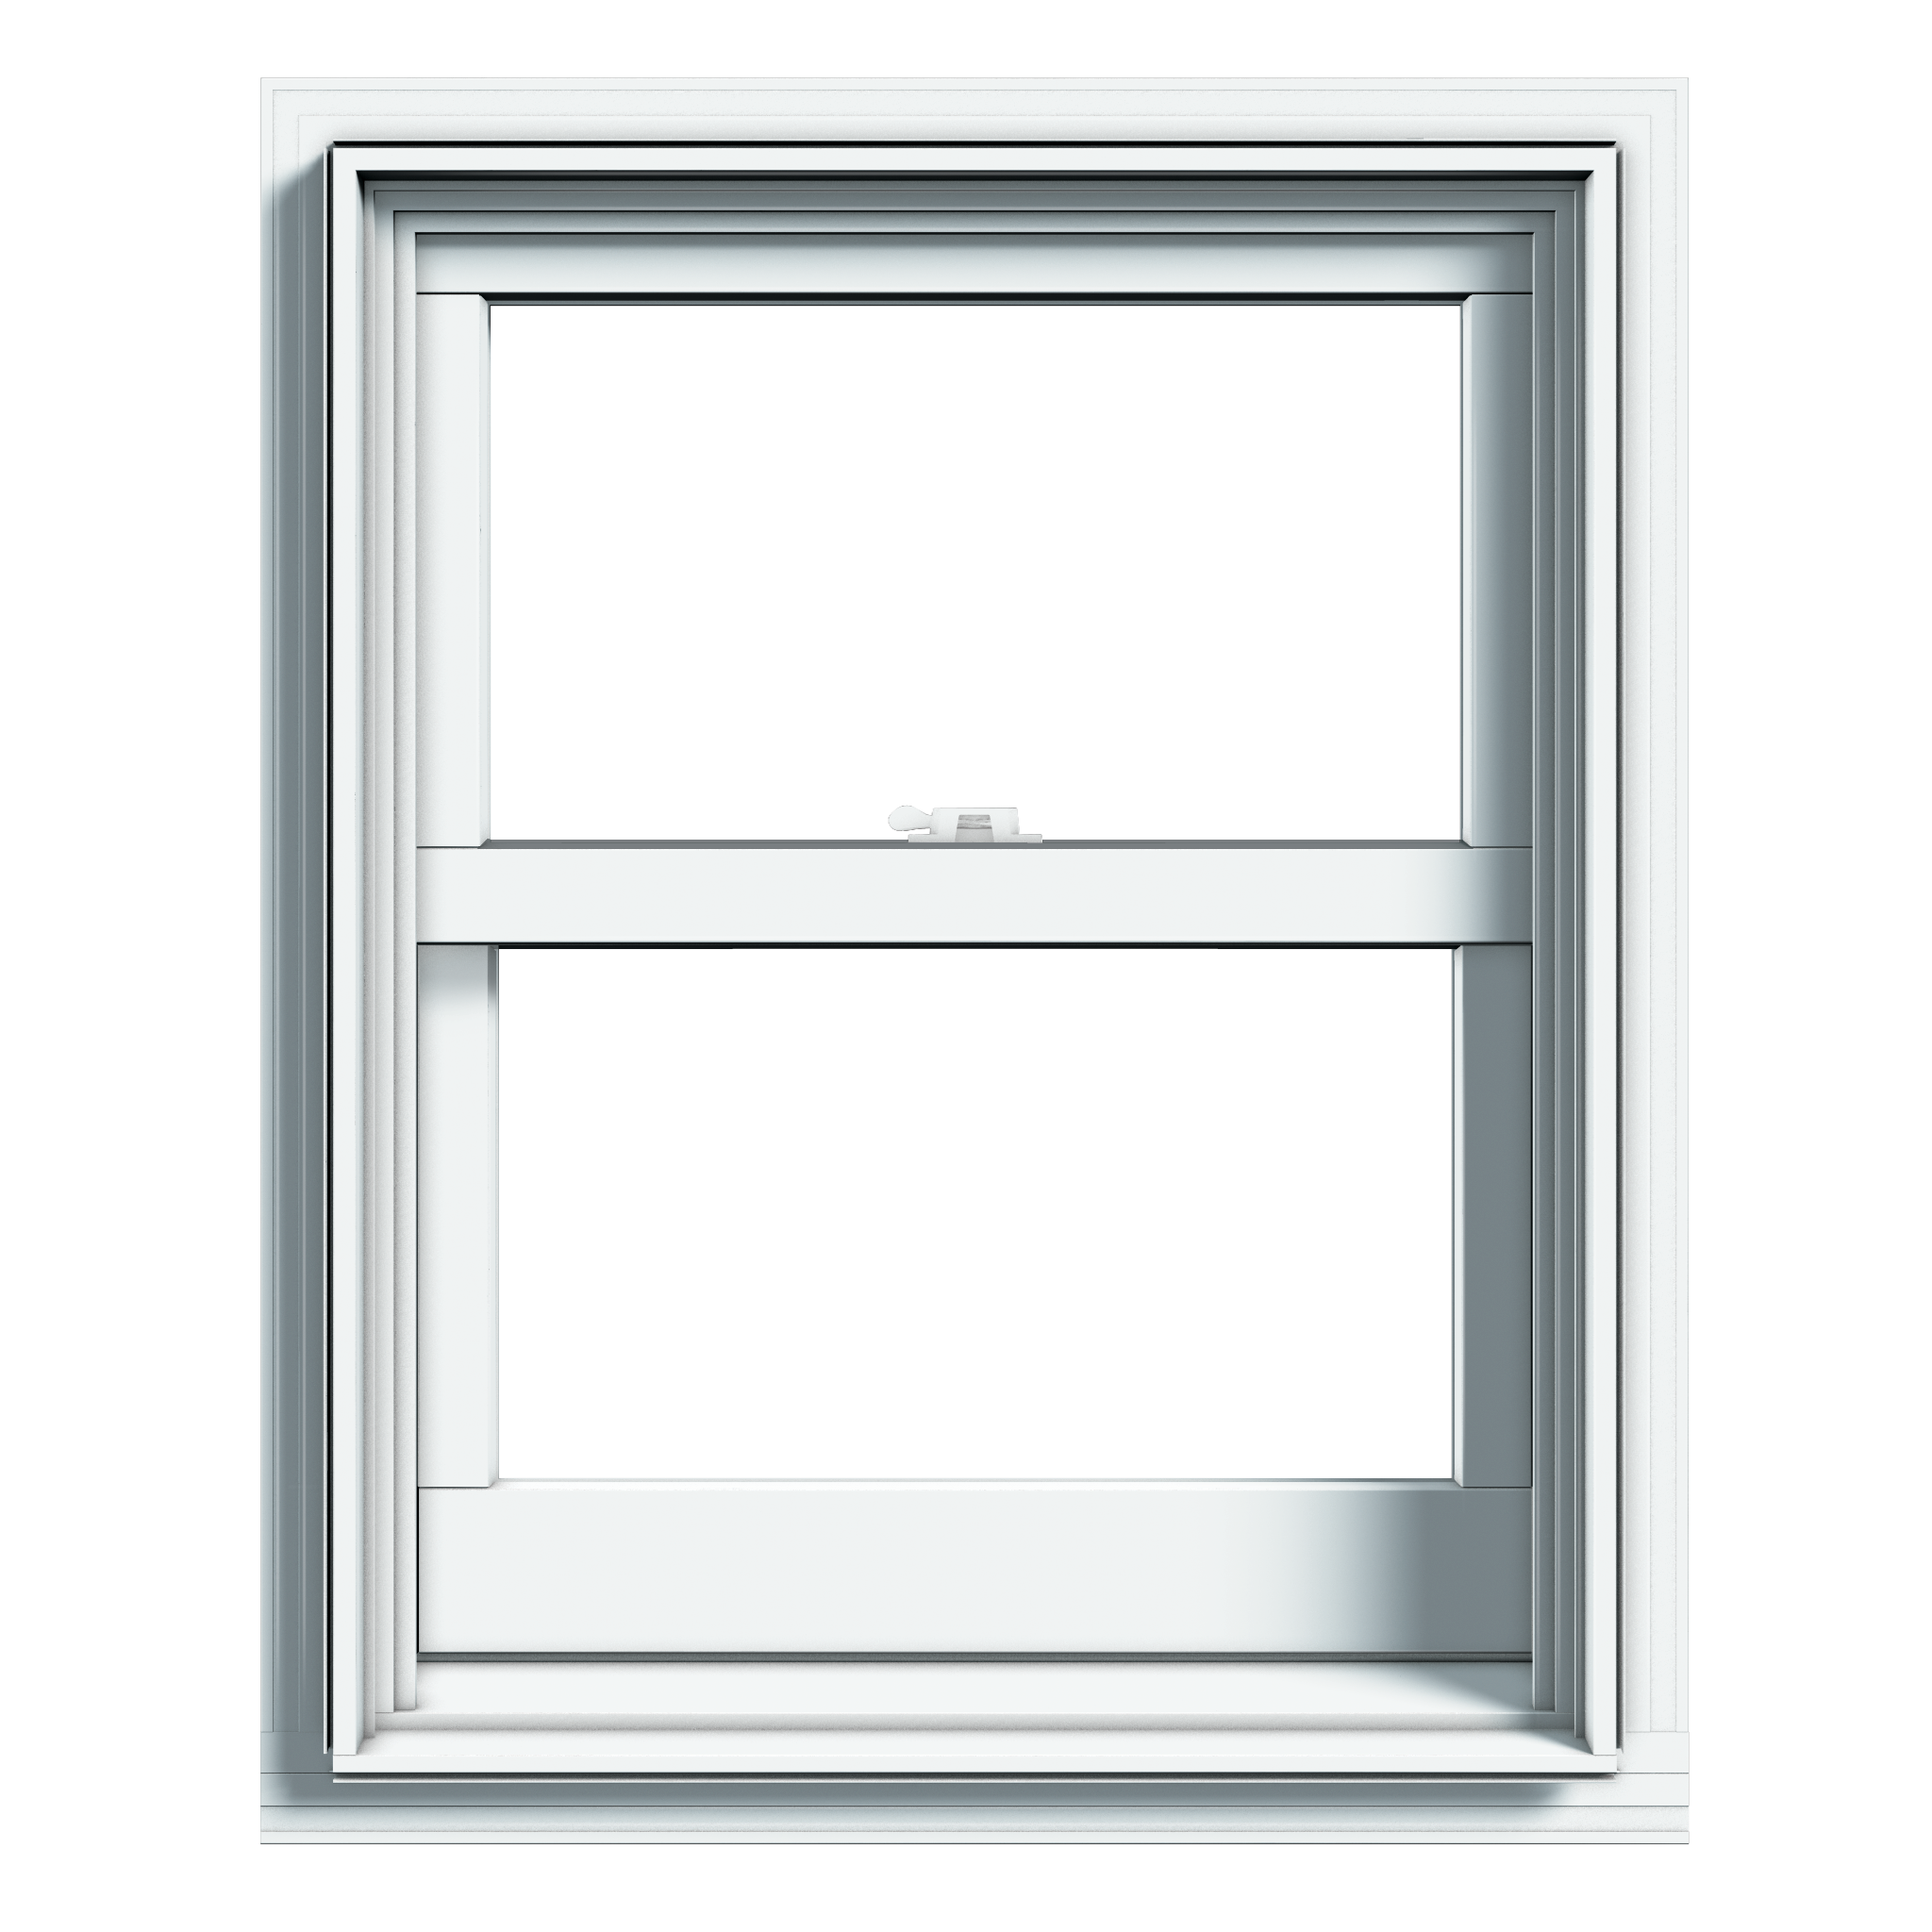 pella bow window pella bow window with casement grids casement bow windows atop patio stairs marvin windows